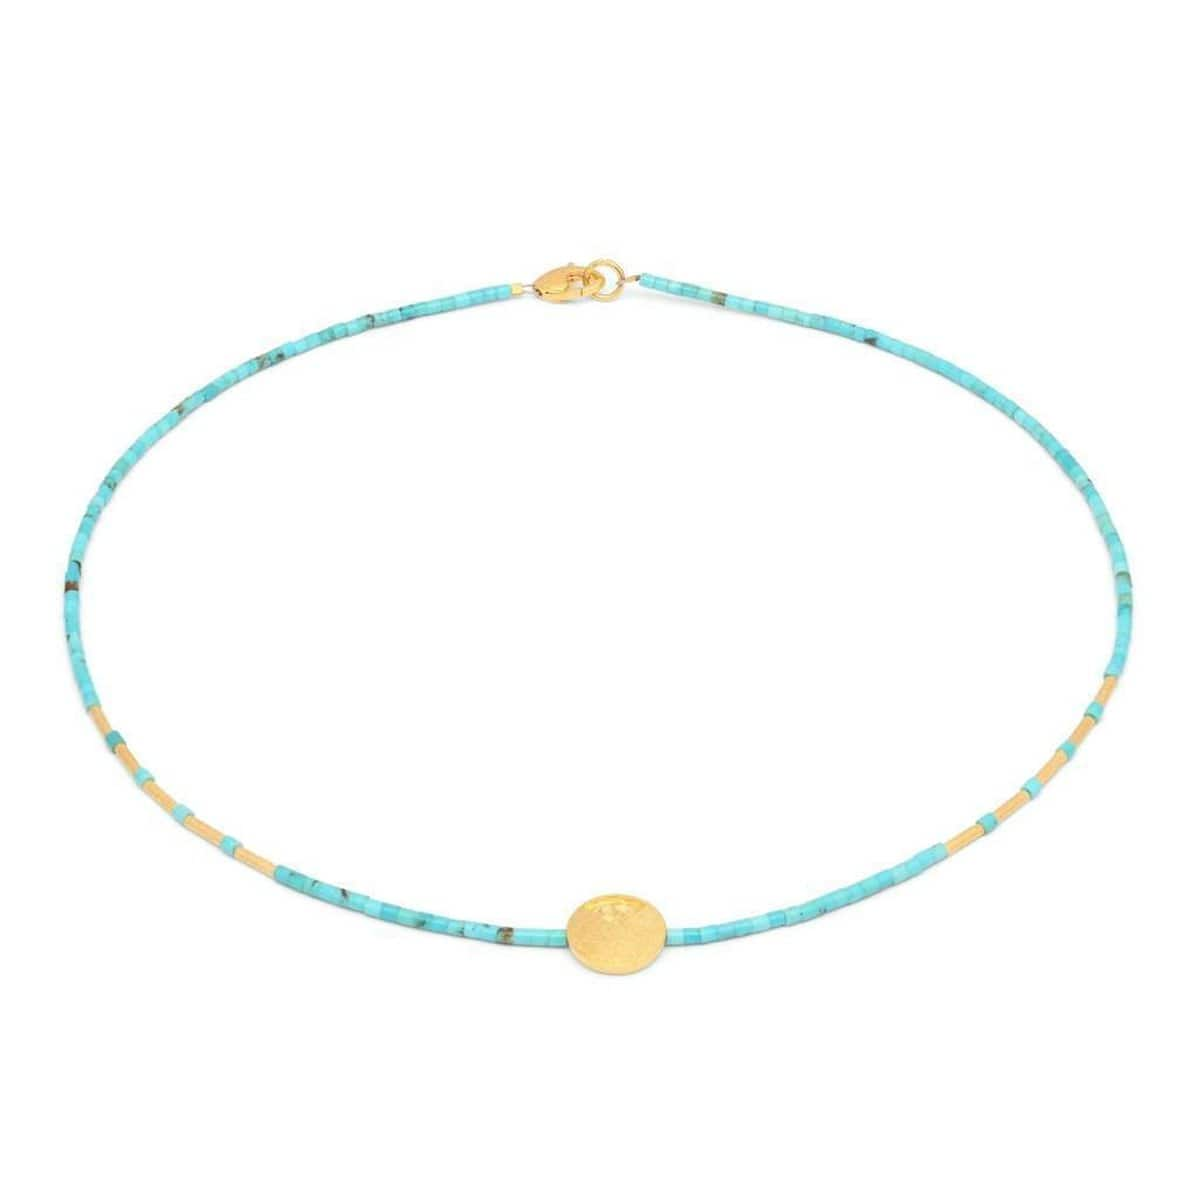 Tori Turquoise Necklace - 80918256-Bernd Wolf-Renee Taylor Gallery